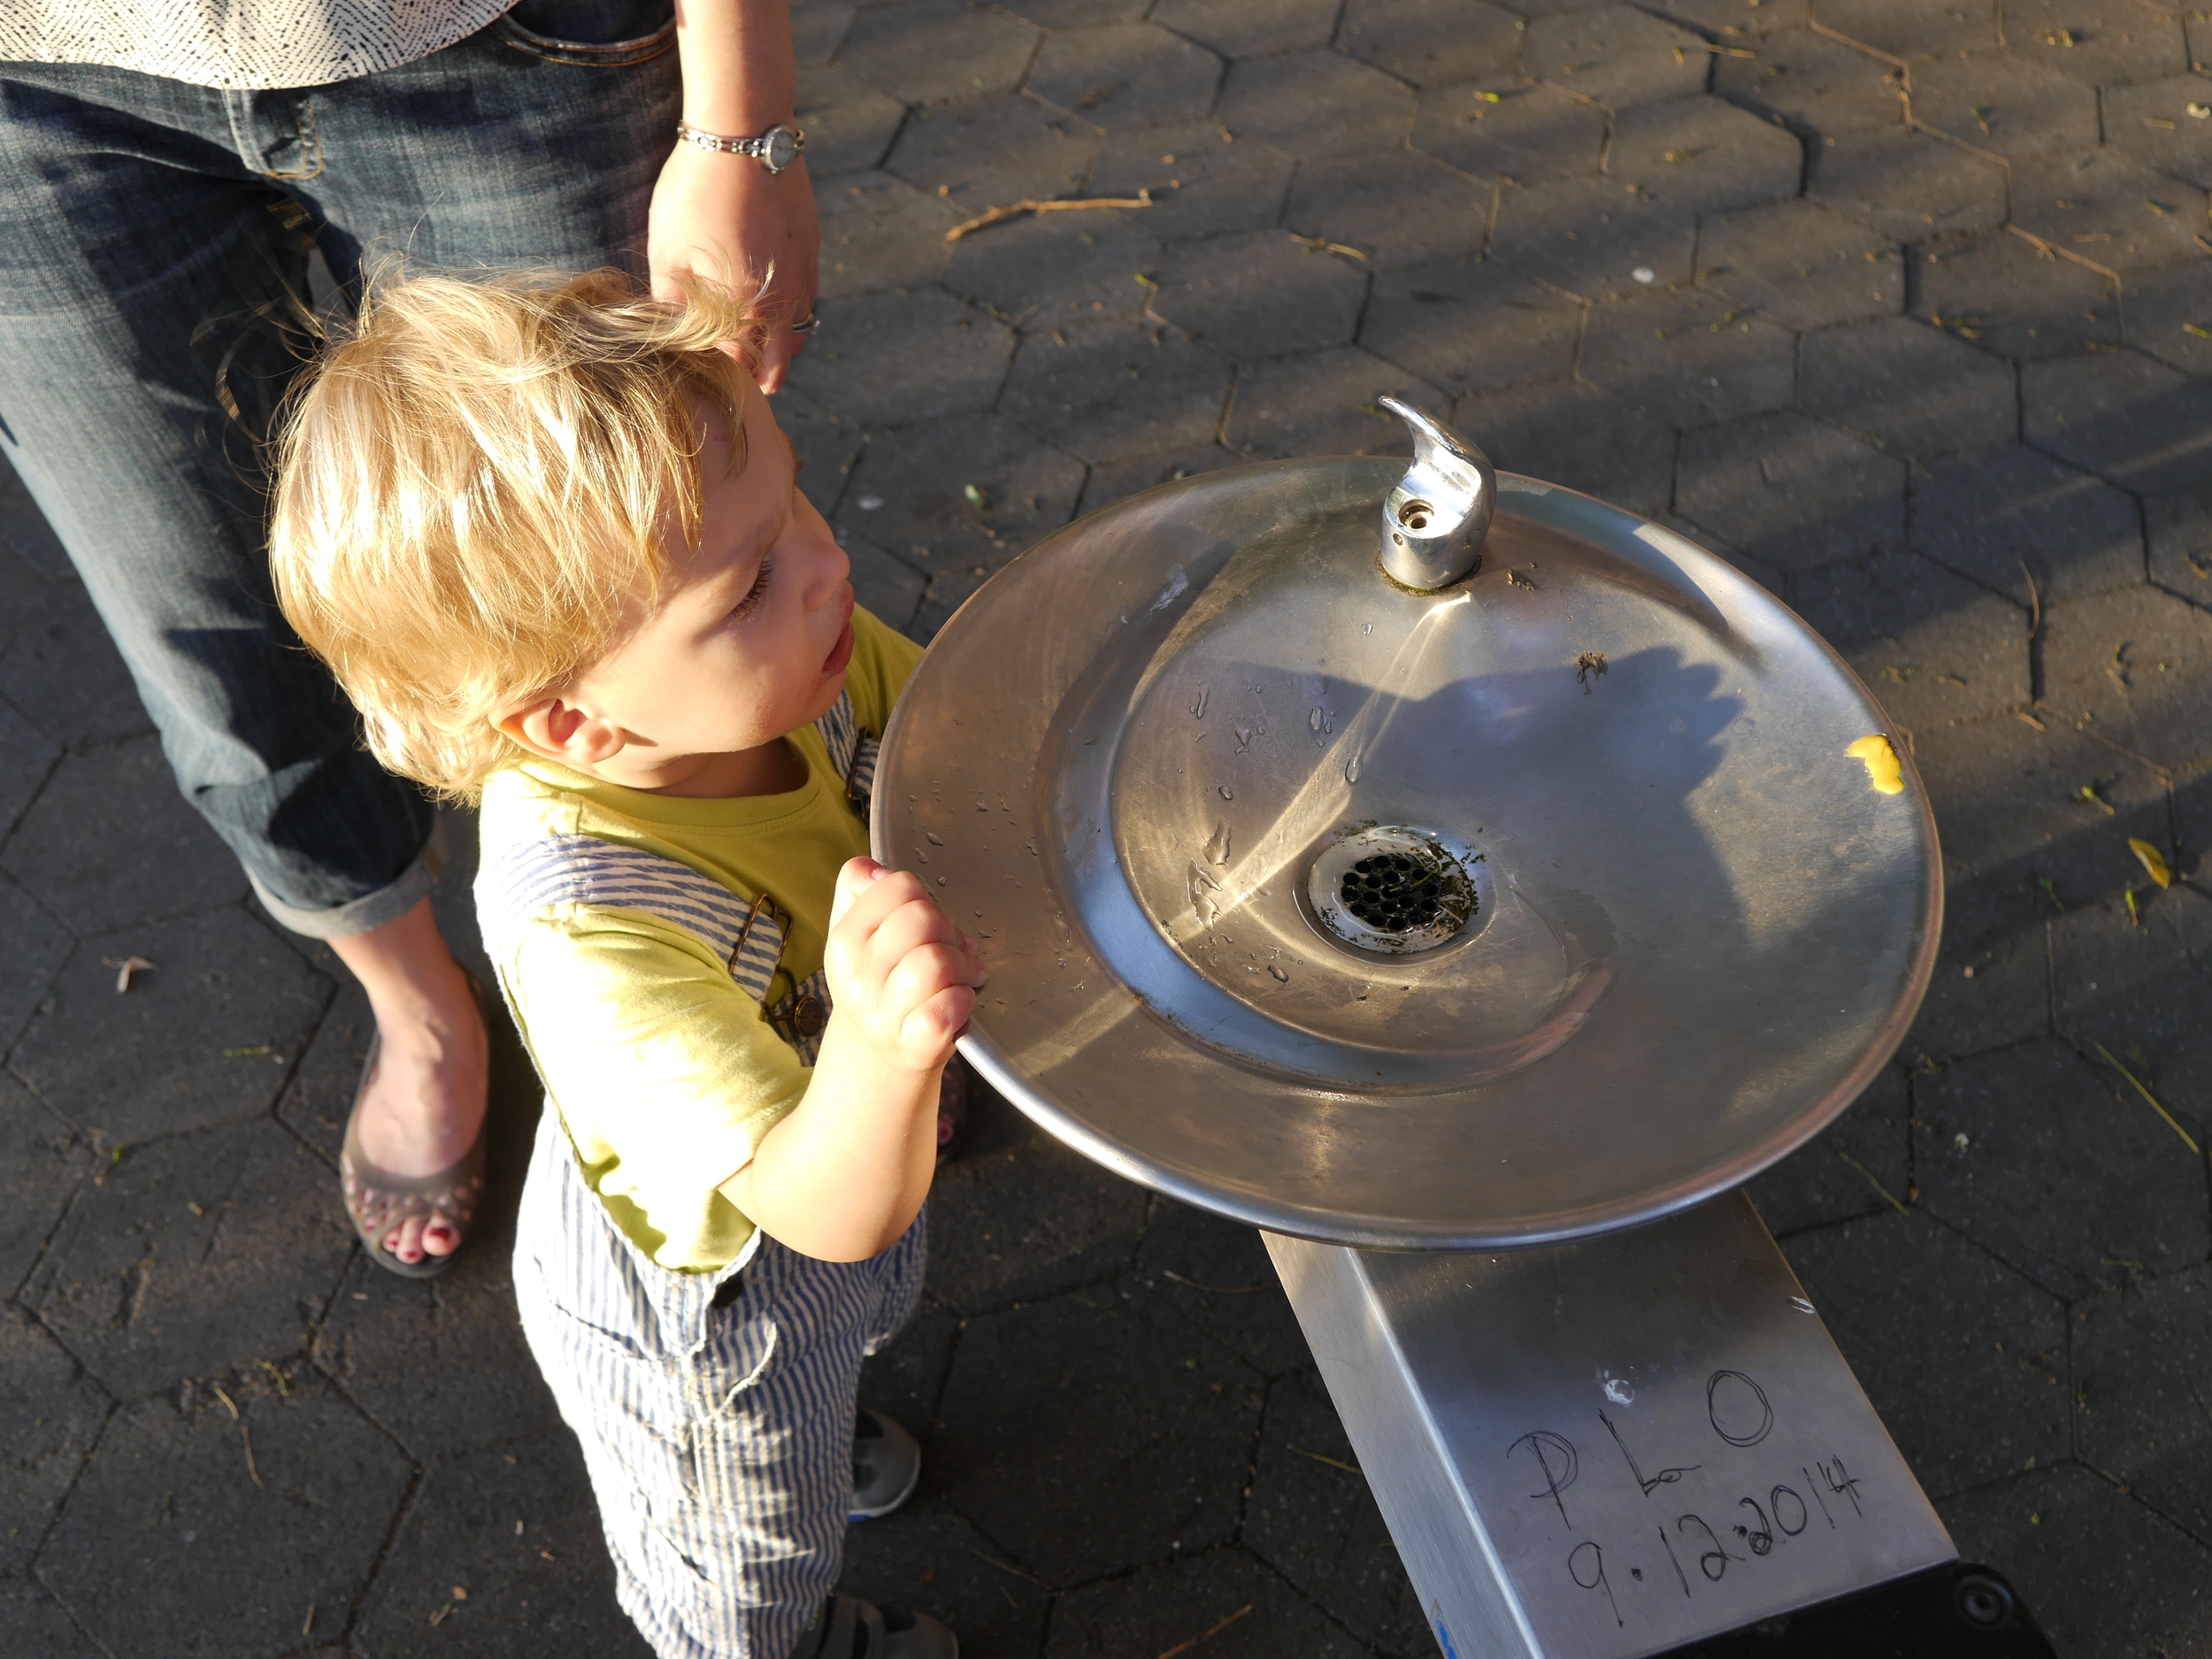 Water fountains are tricky when you're short.